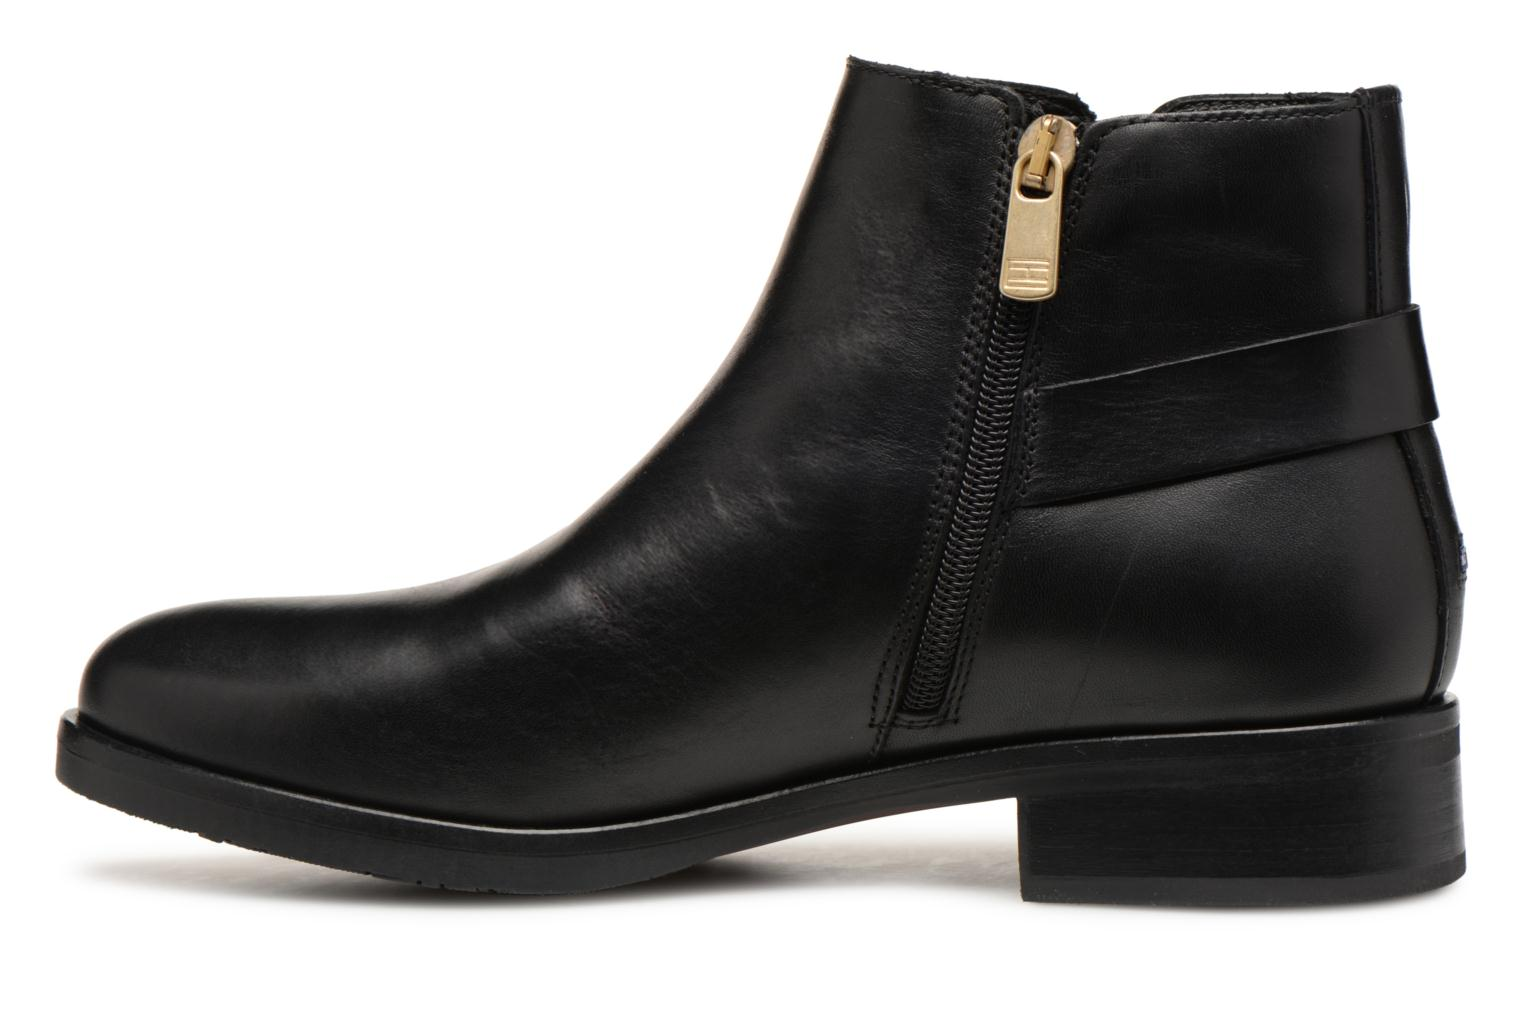 Bottines et boots Tommy Hilfiger TH BUCKLE LEATHER BOOTIE Noir vue face